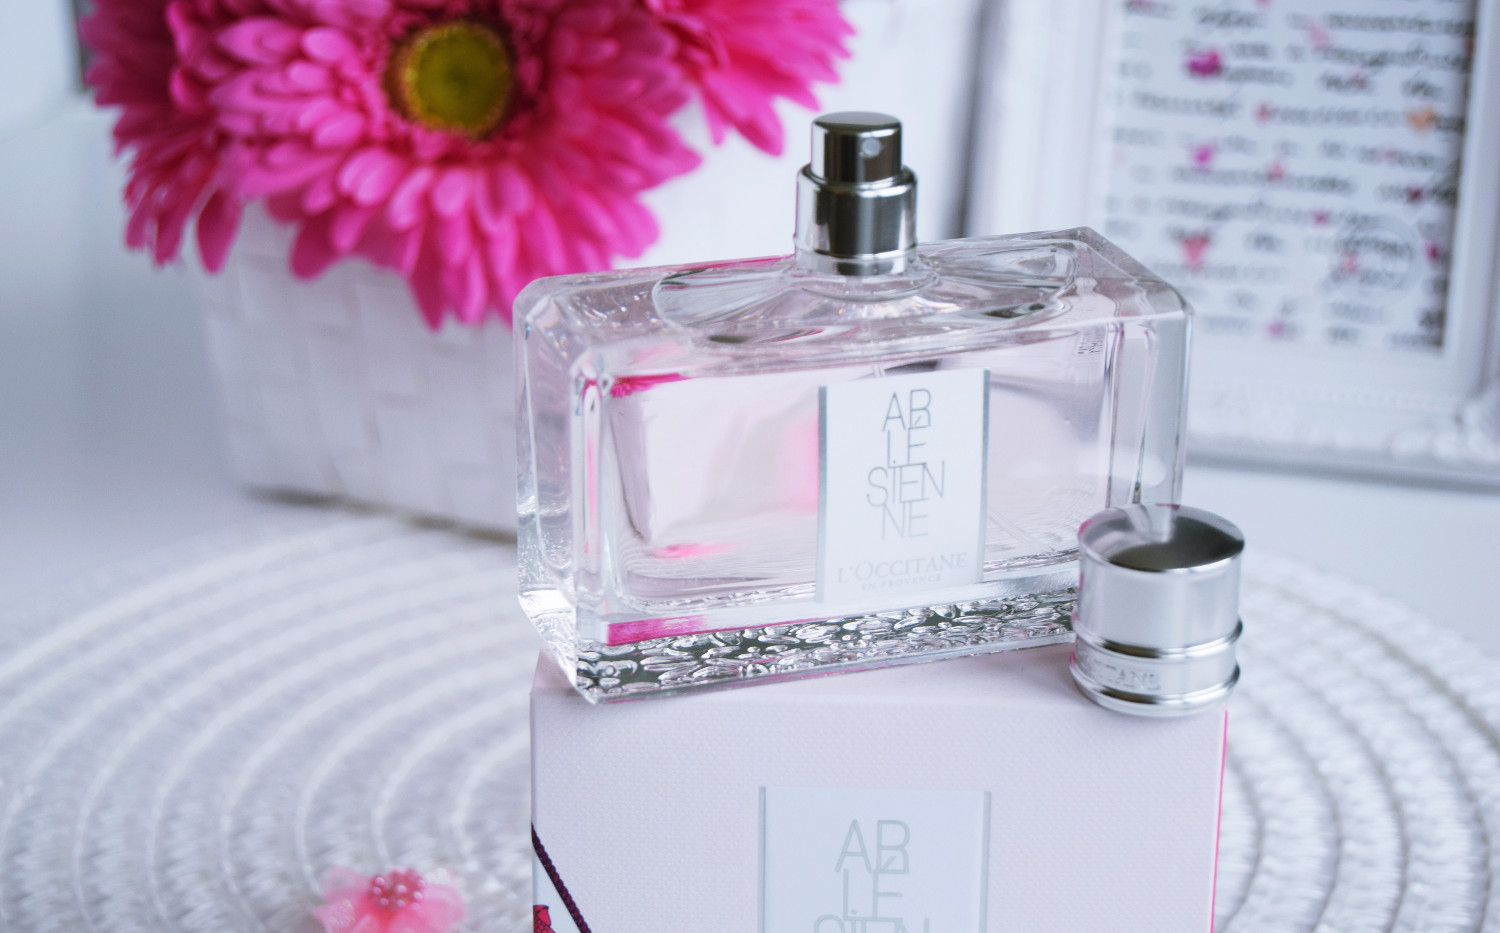 L'Occitane_Arlésienne_eau_de_toilette_review_Zalabell_beauty_6